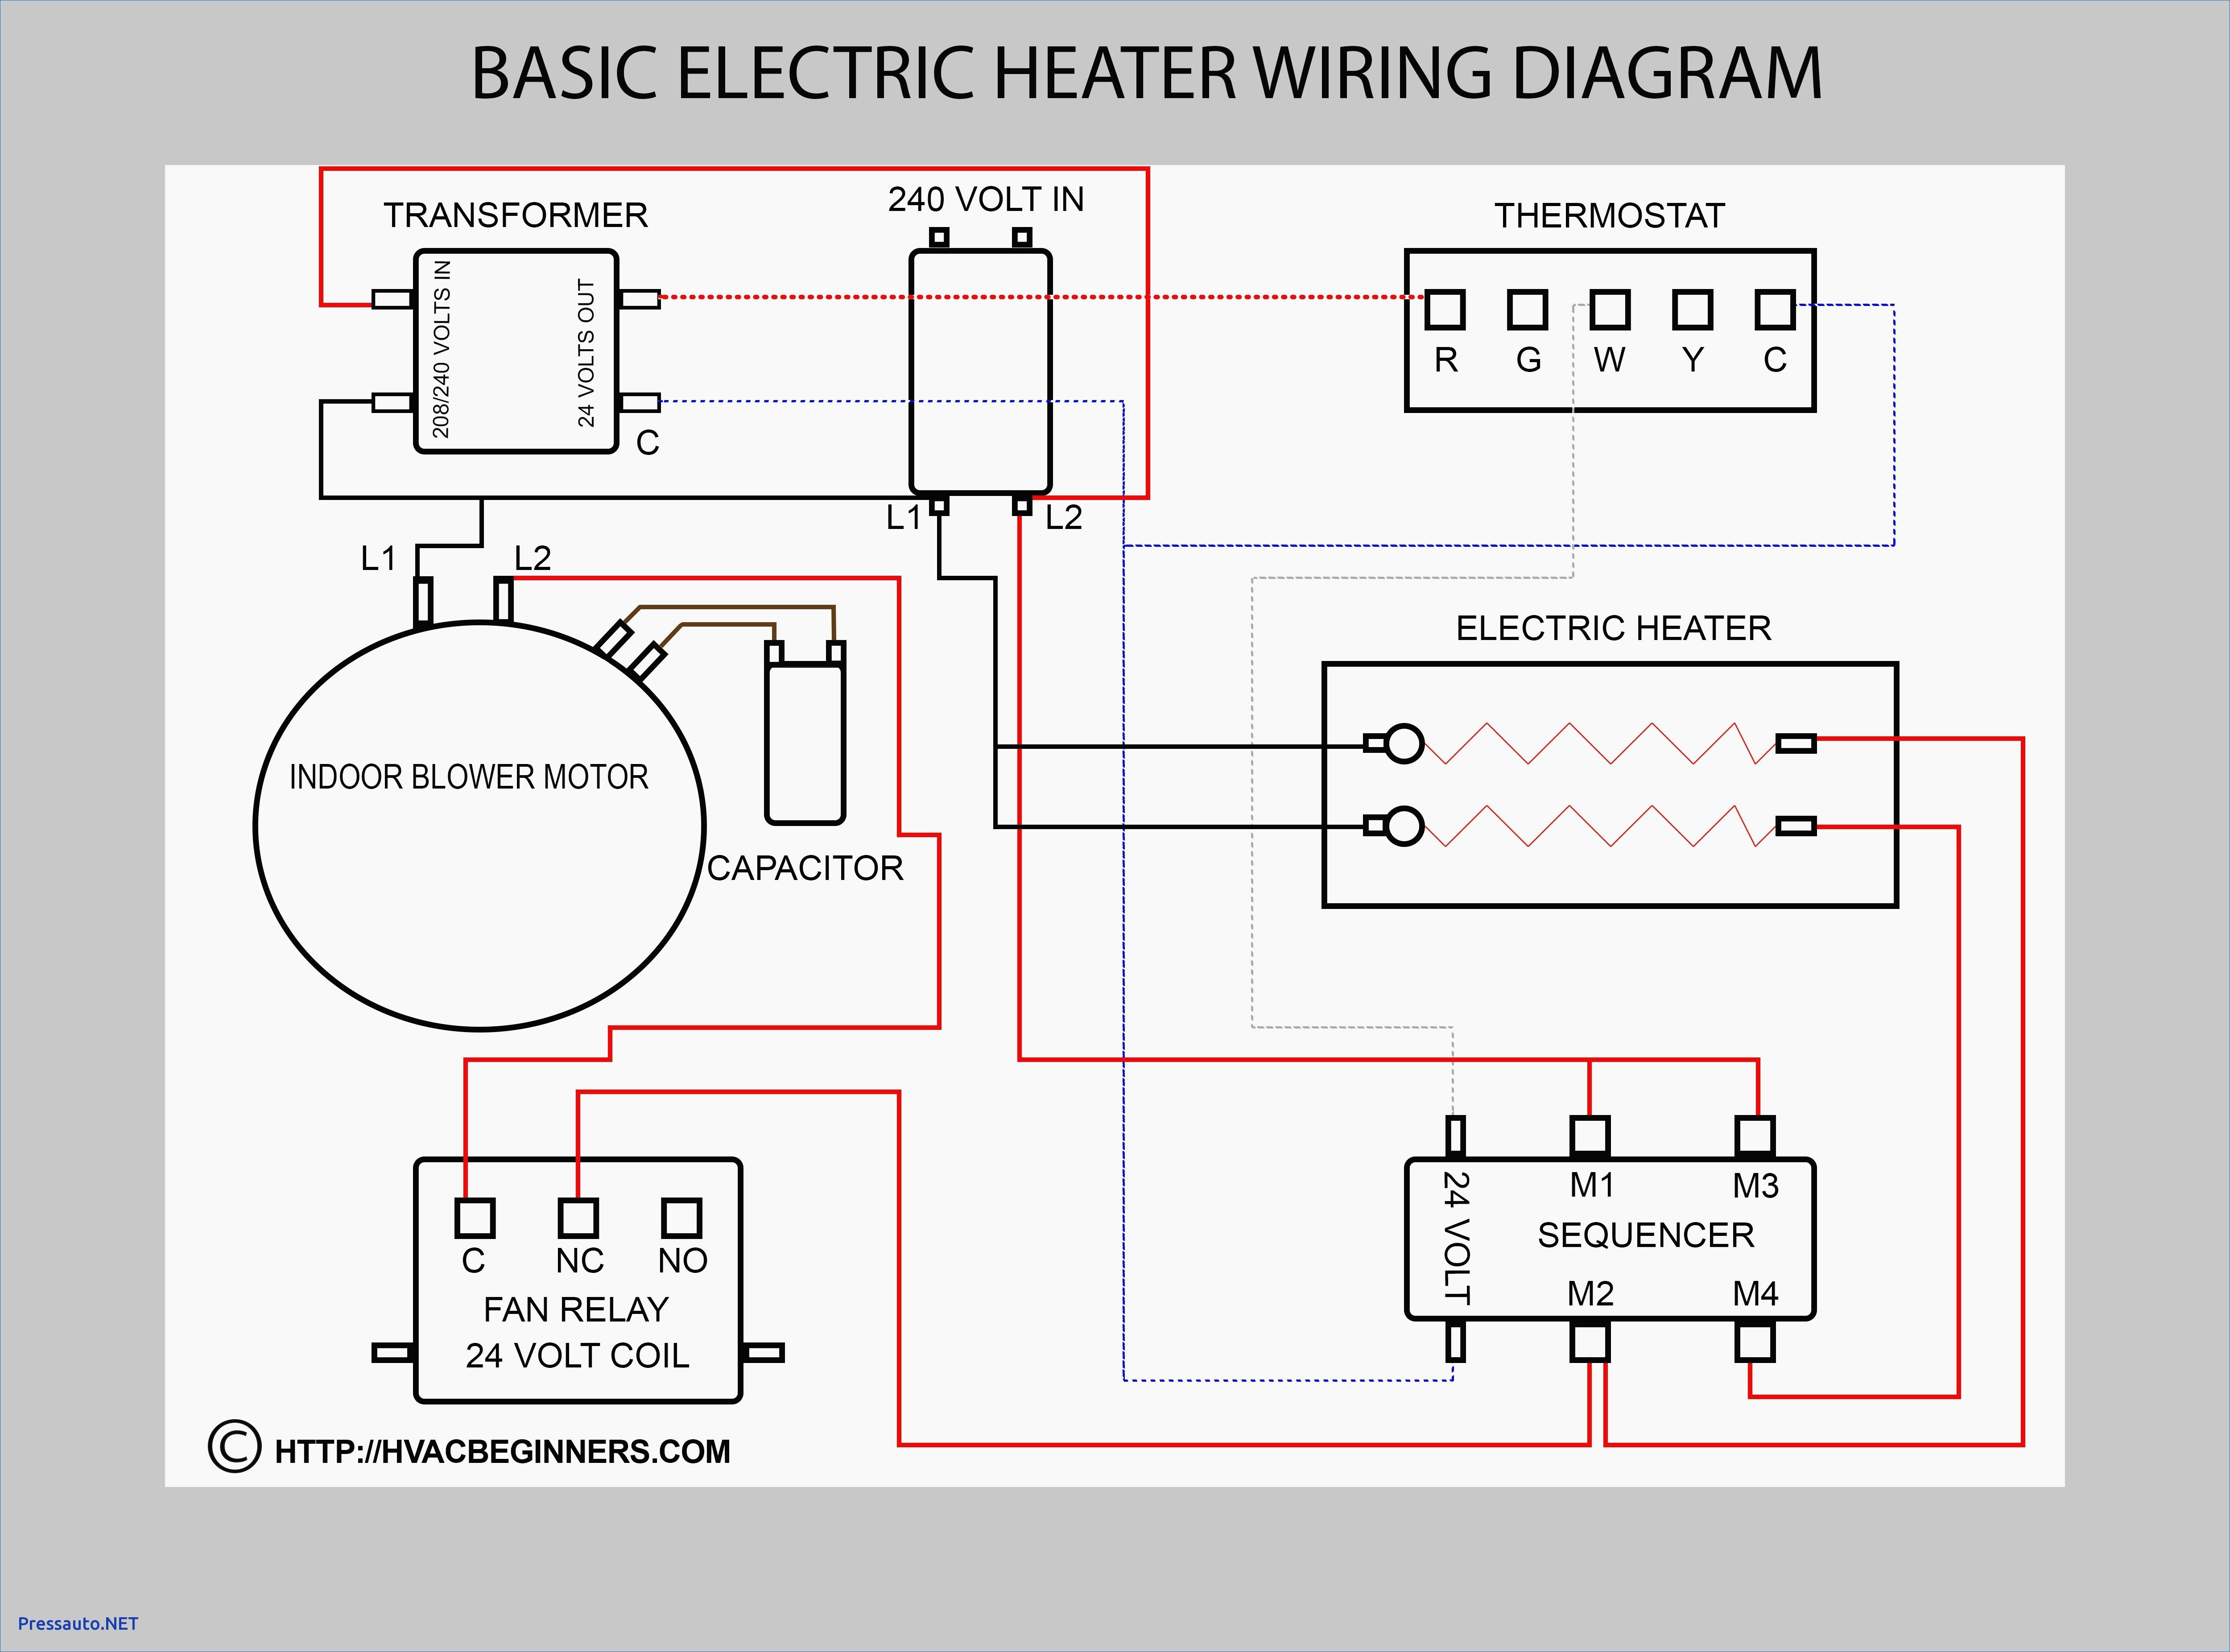 goodman furnace thermostat wiring diagram Download-Goodman Furnace Wiring Diagram Beautiful Heat Pump Wire Colors Brilliant Thermostat 19-i